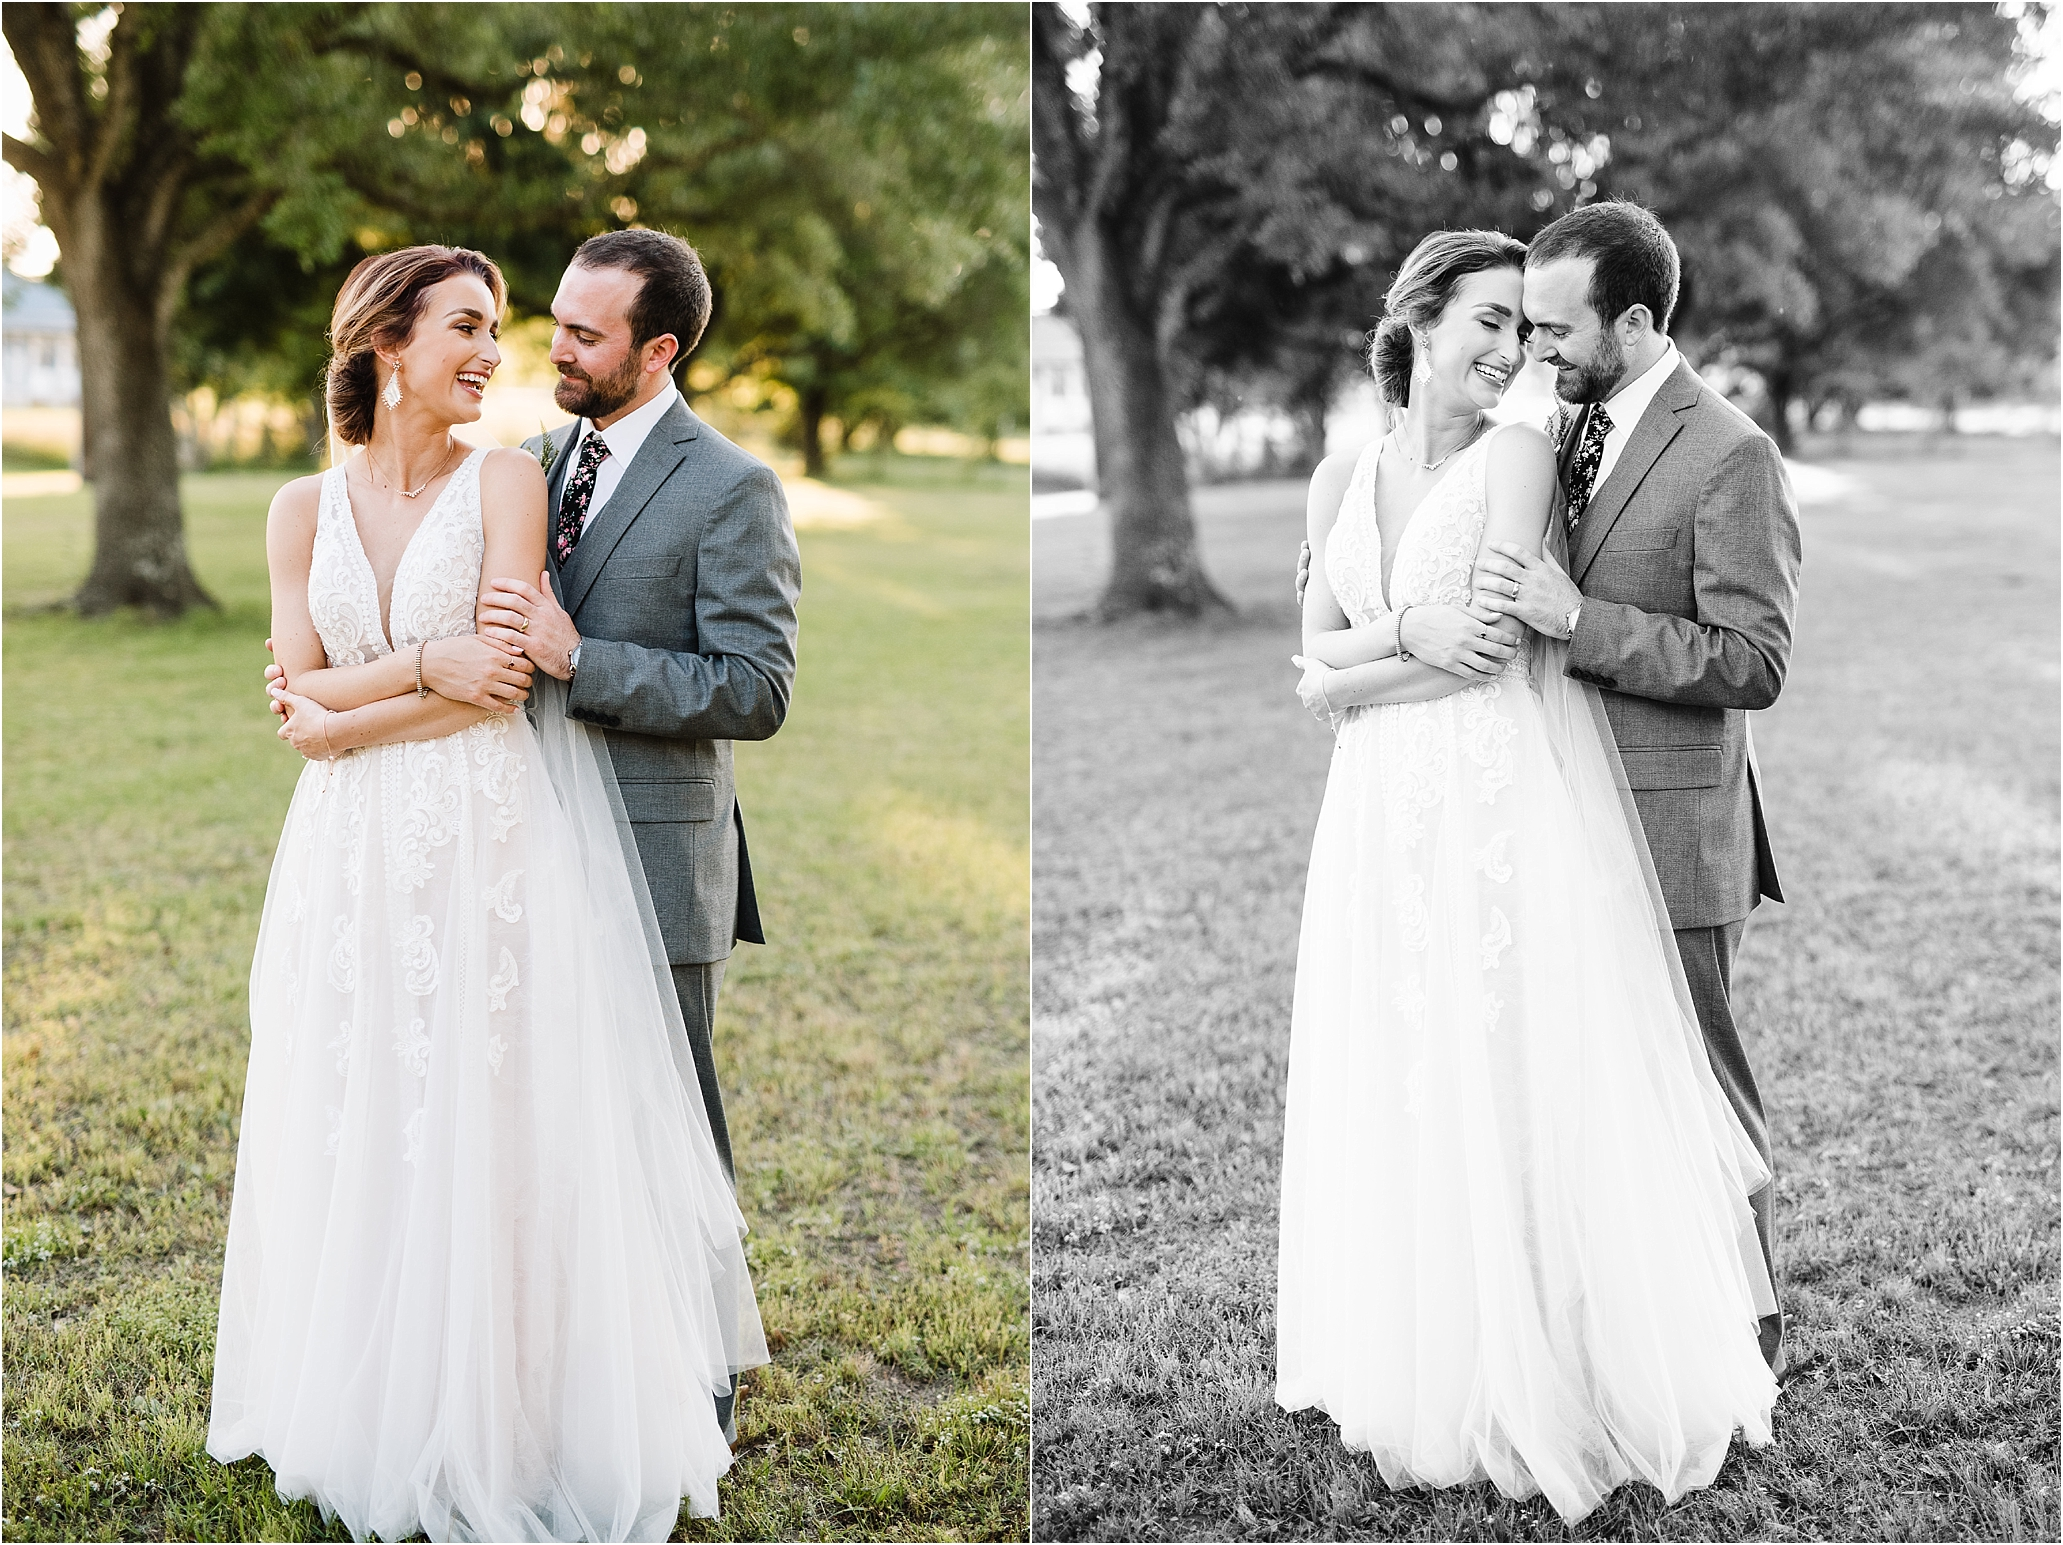 PattisonHouse_TexasWeddingPhotographer_CarlyCrockett&MattBrownWedding_0070.jpg